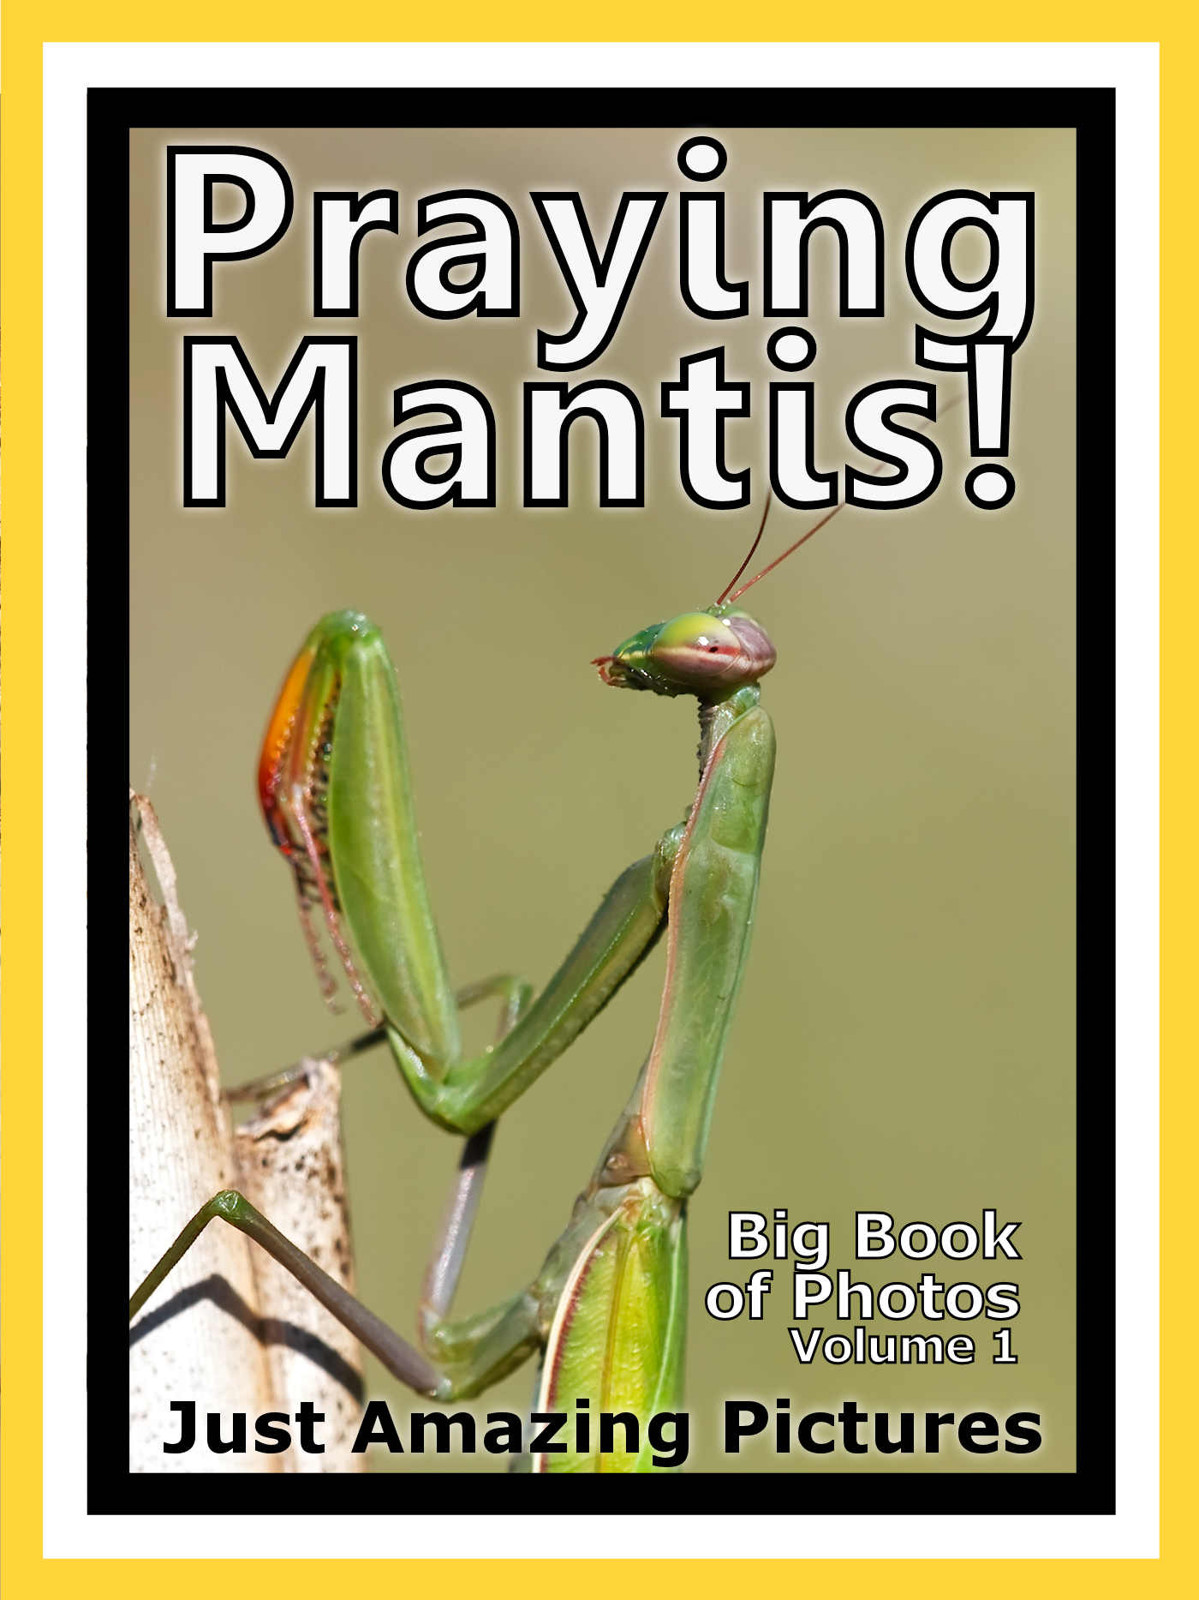 Just Praying Mantis Photos! Big Book of Photographs & Pictures of Praying Mantis, Vol. 1